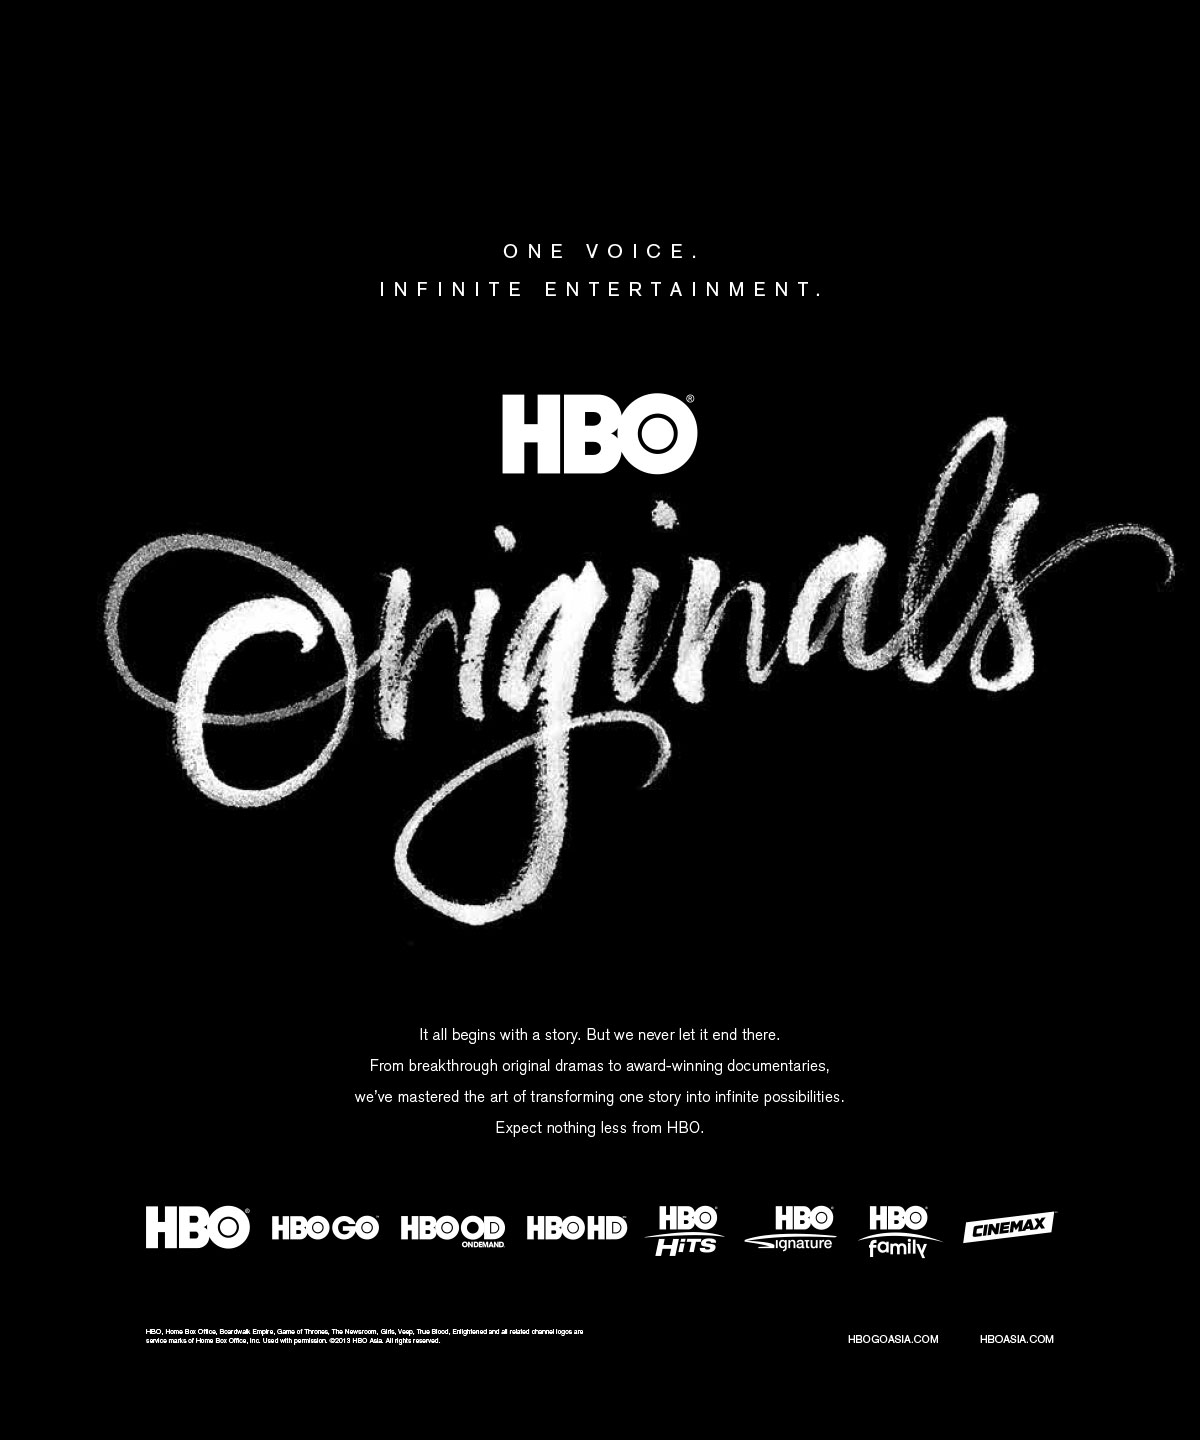 HBO-Originals-2015-Print-Campaign-4